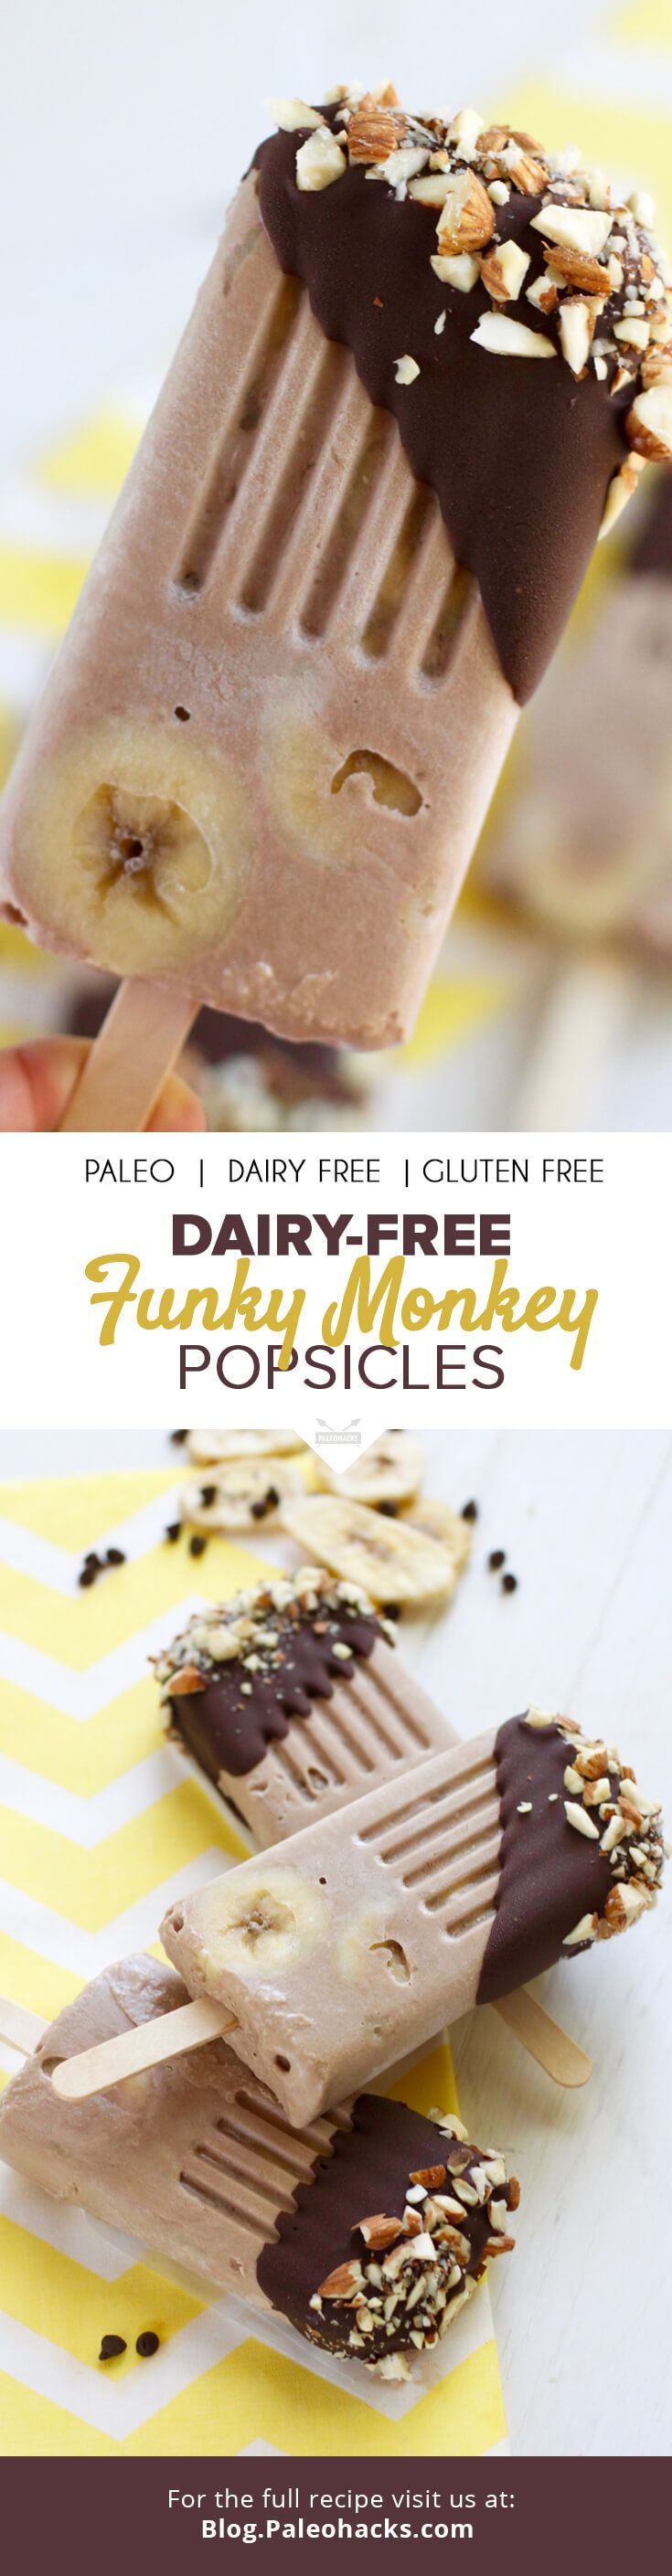 Chocolate Banana Funky Monkey Popsicles Dairy Free